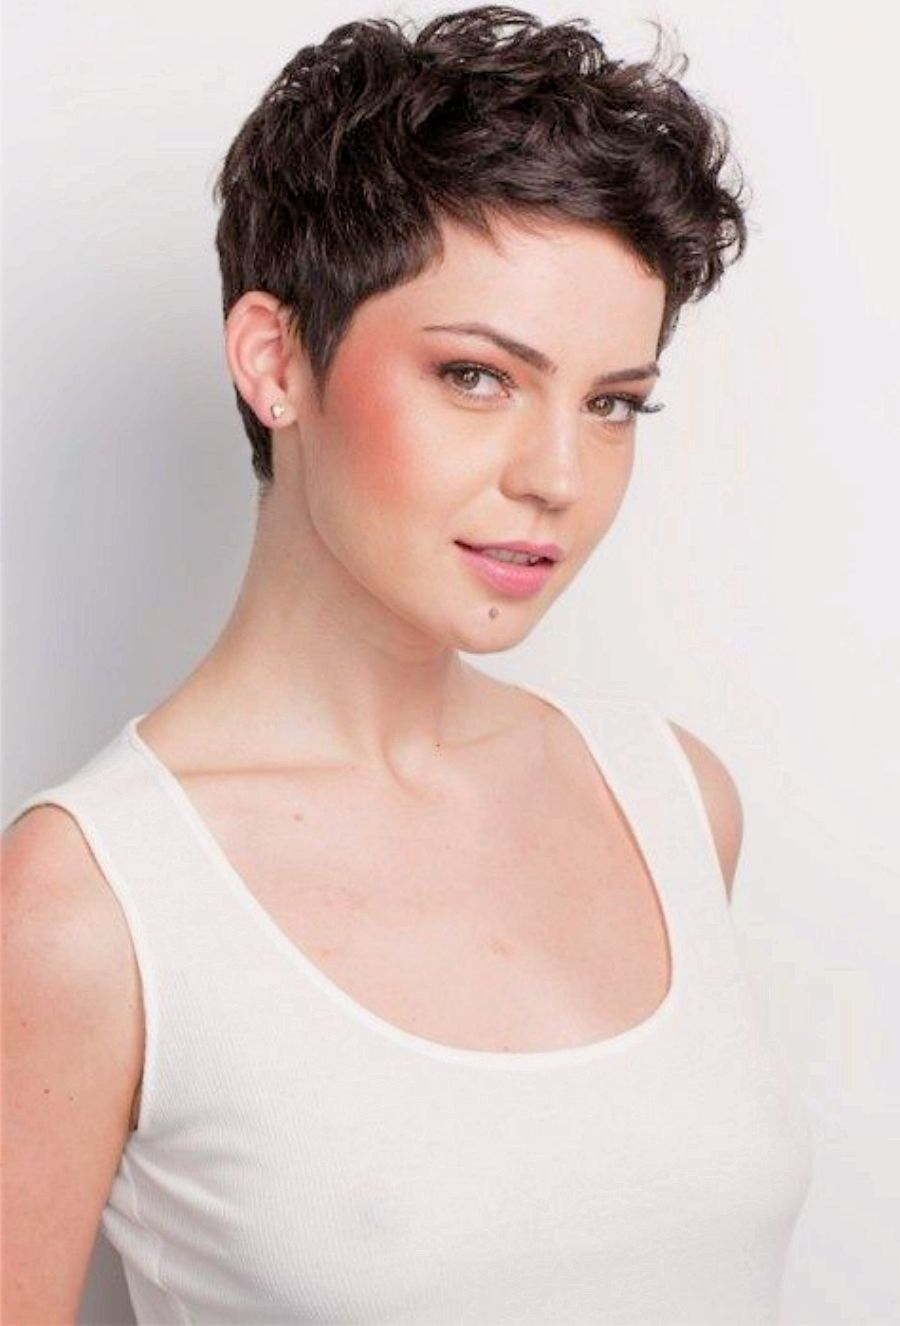 12 Charming Curly Pixie Hairstyles for Women  Haircut for thick